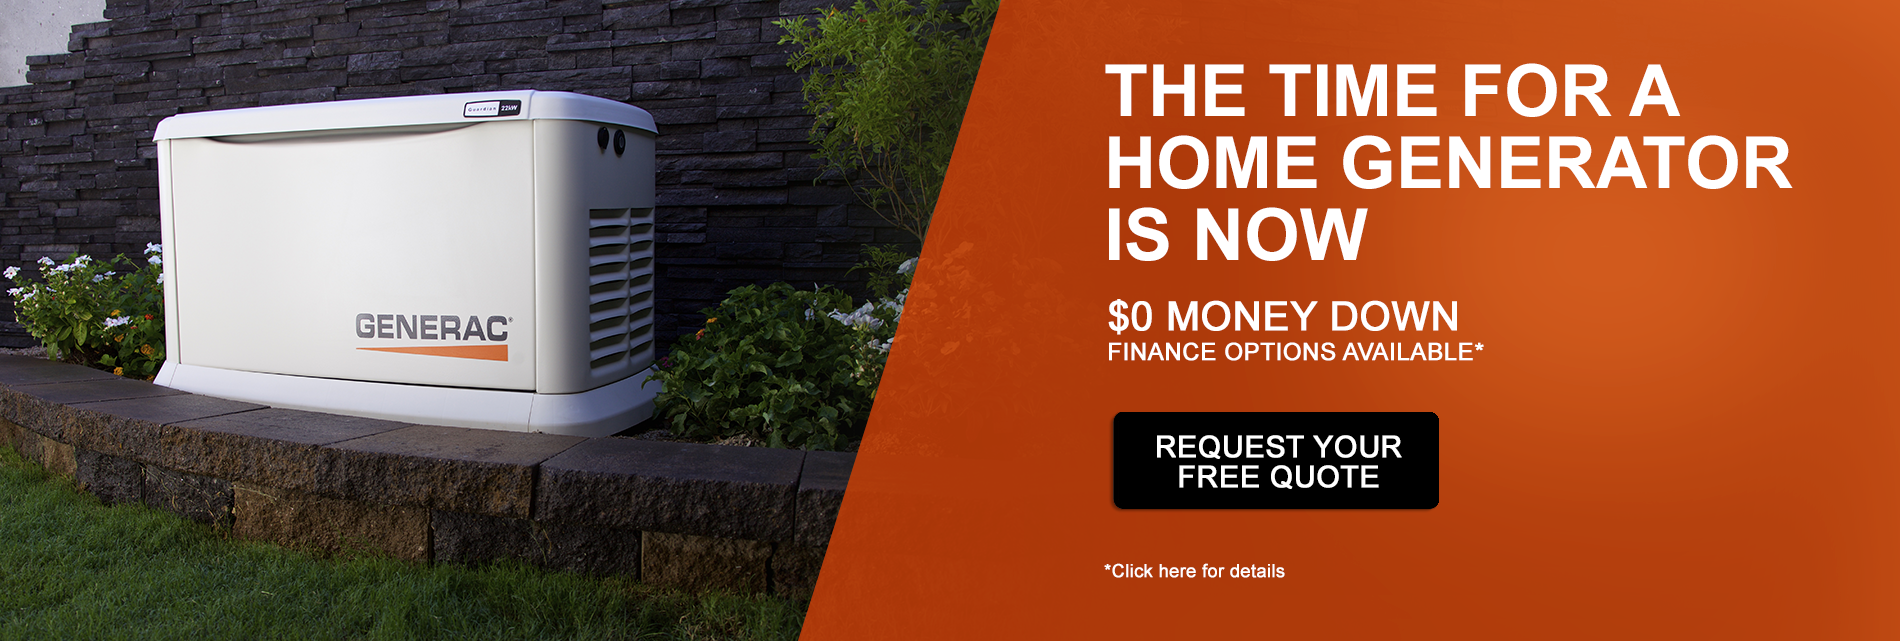 The Time for a Home Generator is Now - Request Your Free Quote